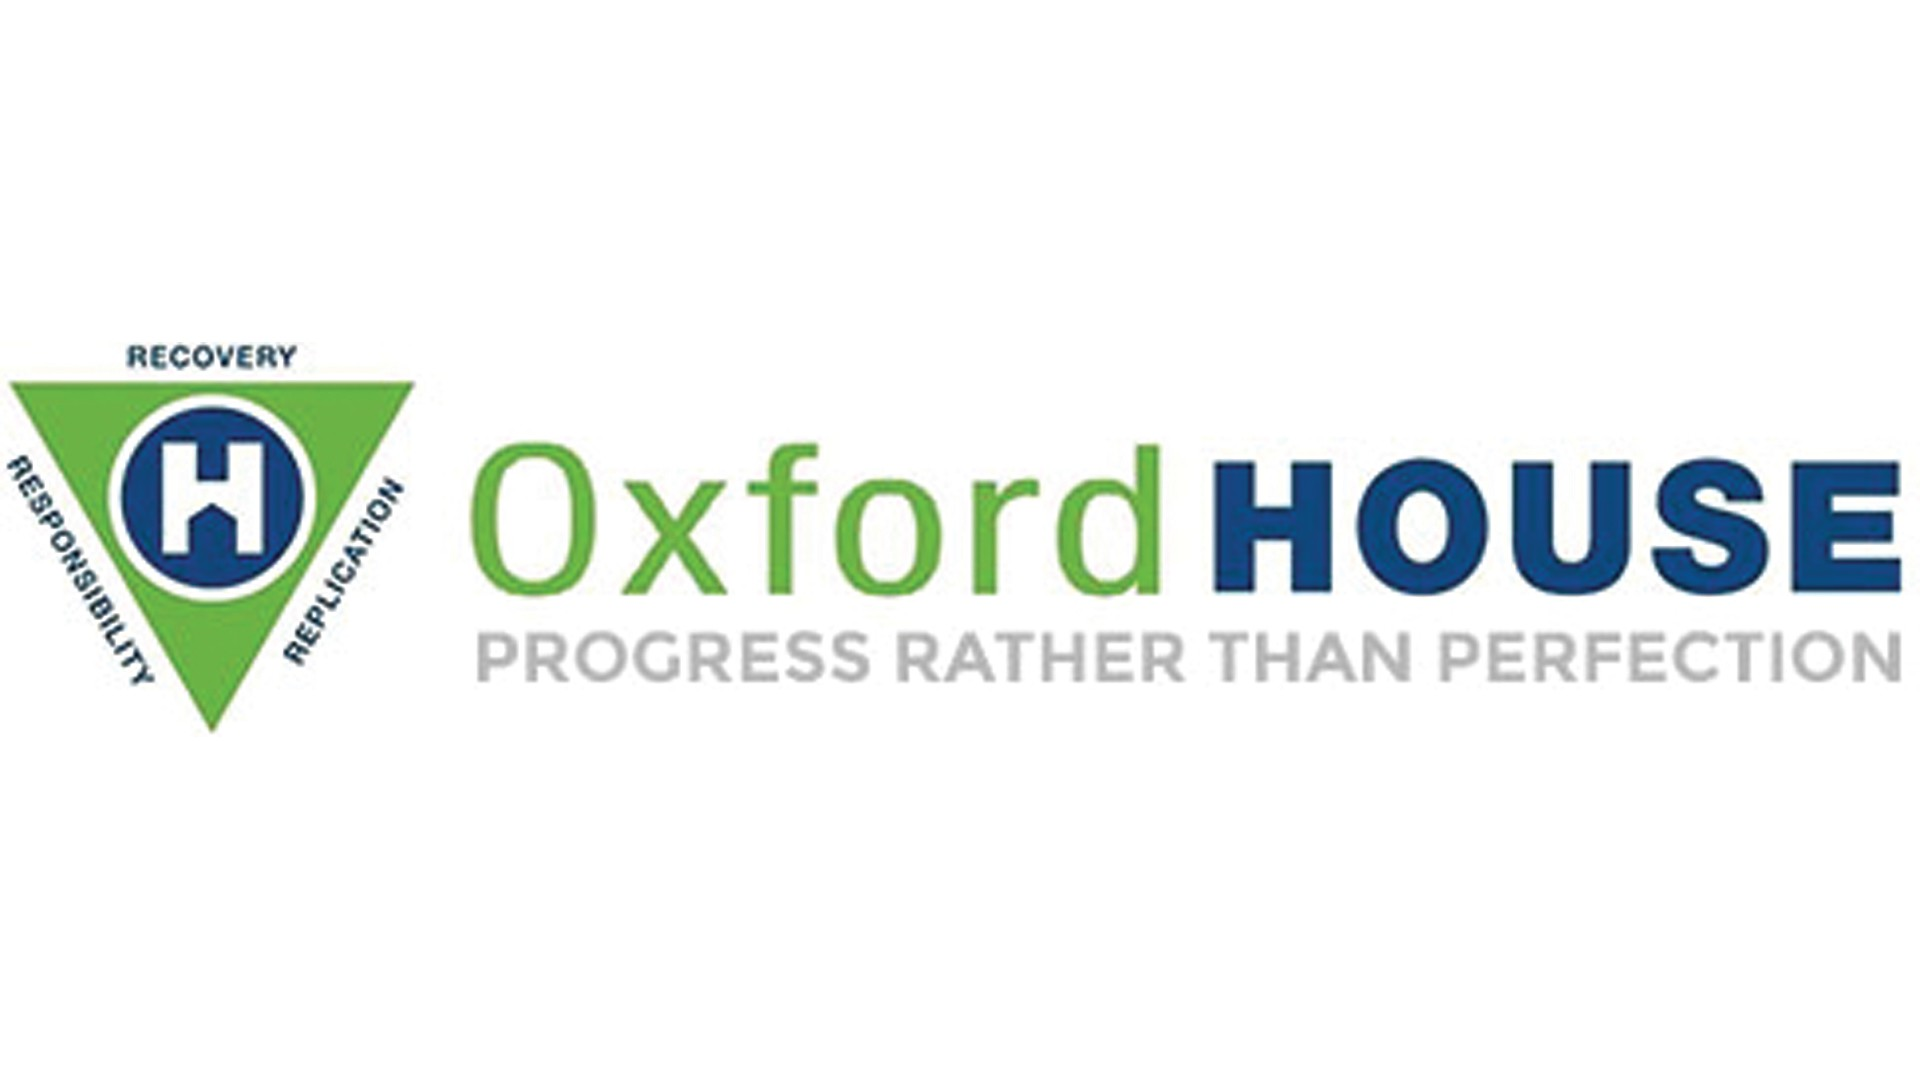 Oxford House on the Sober House Directory